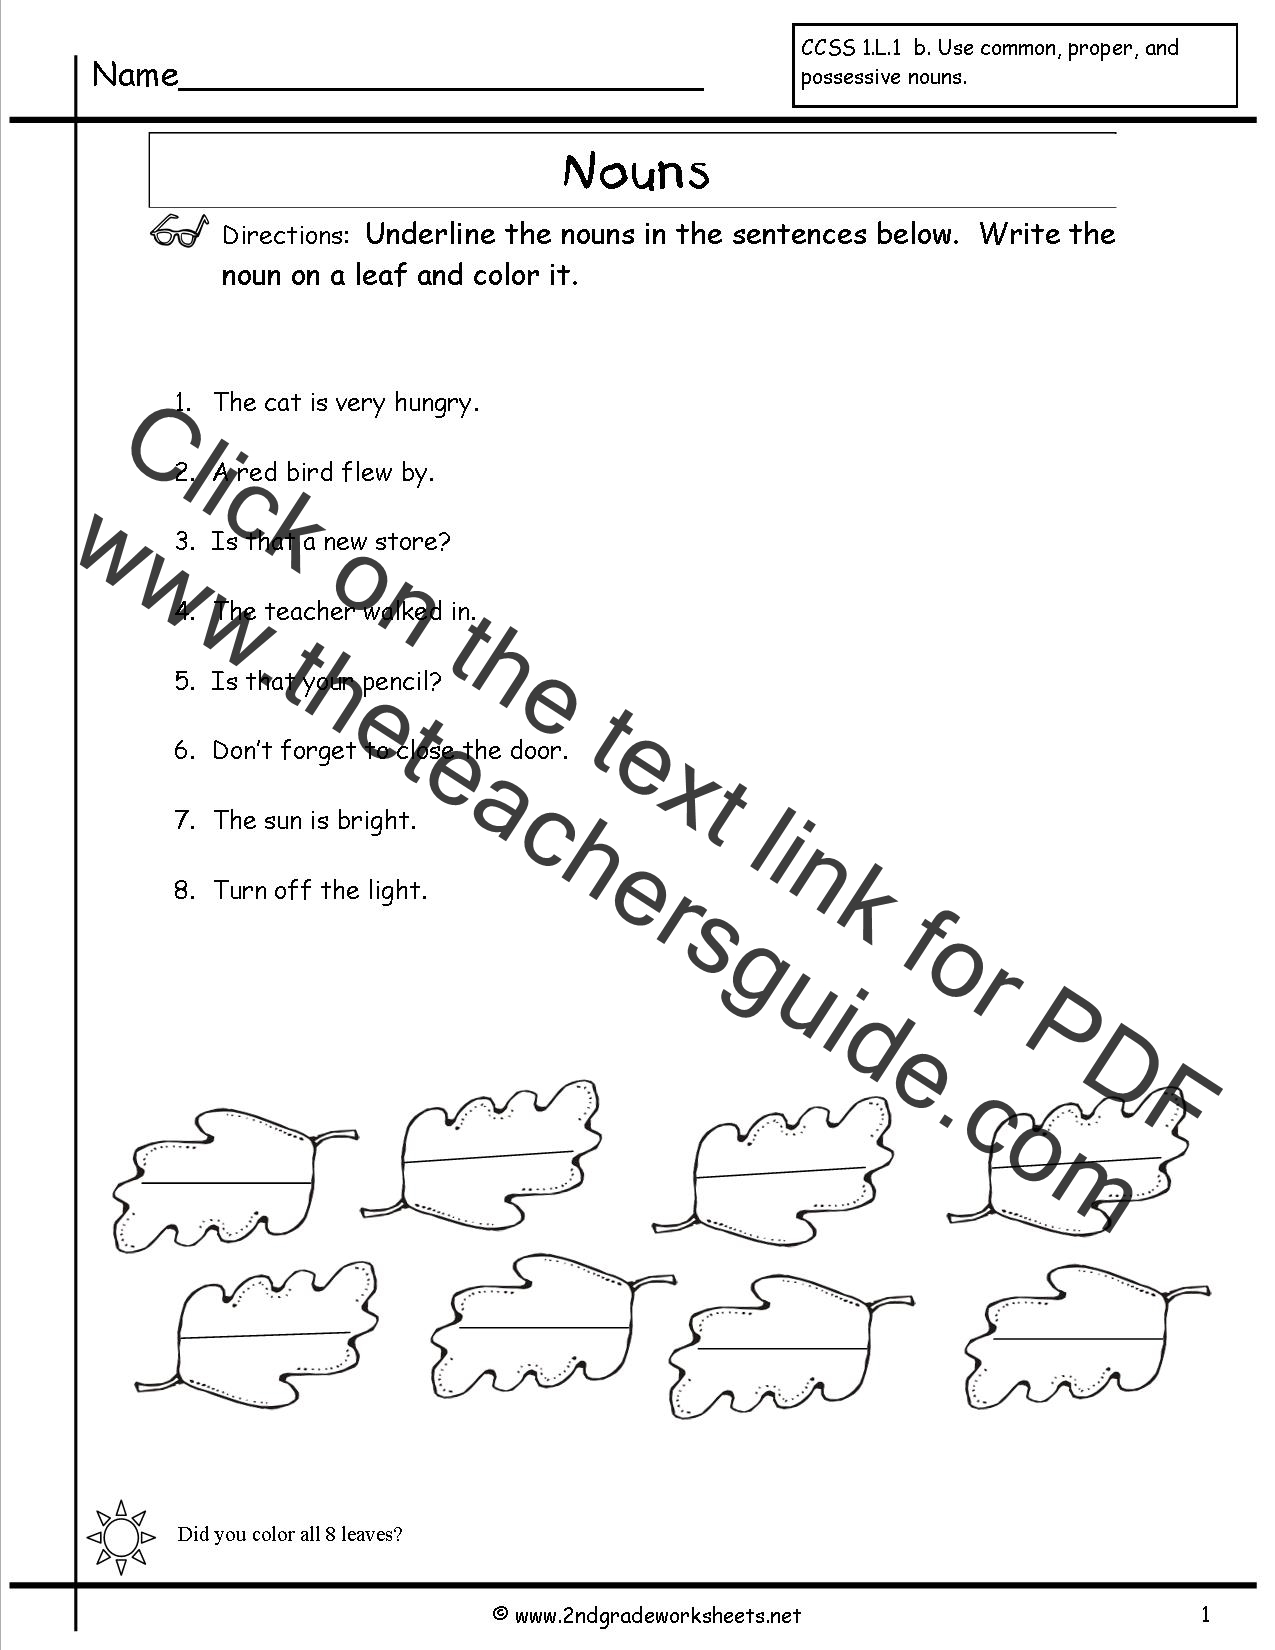 Nouns Worksheets And Printouts